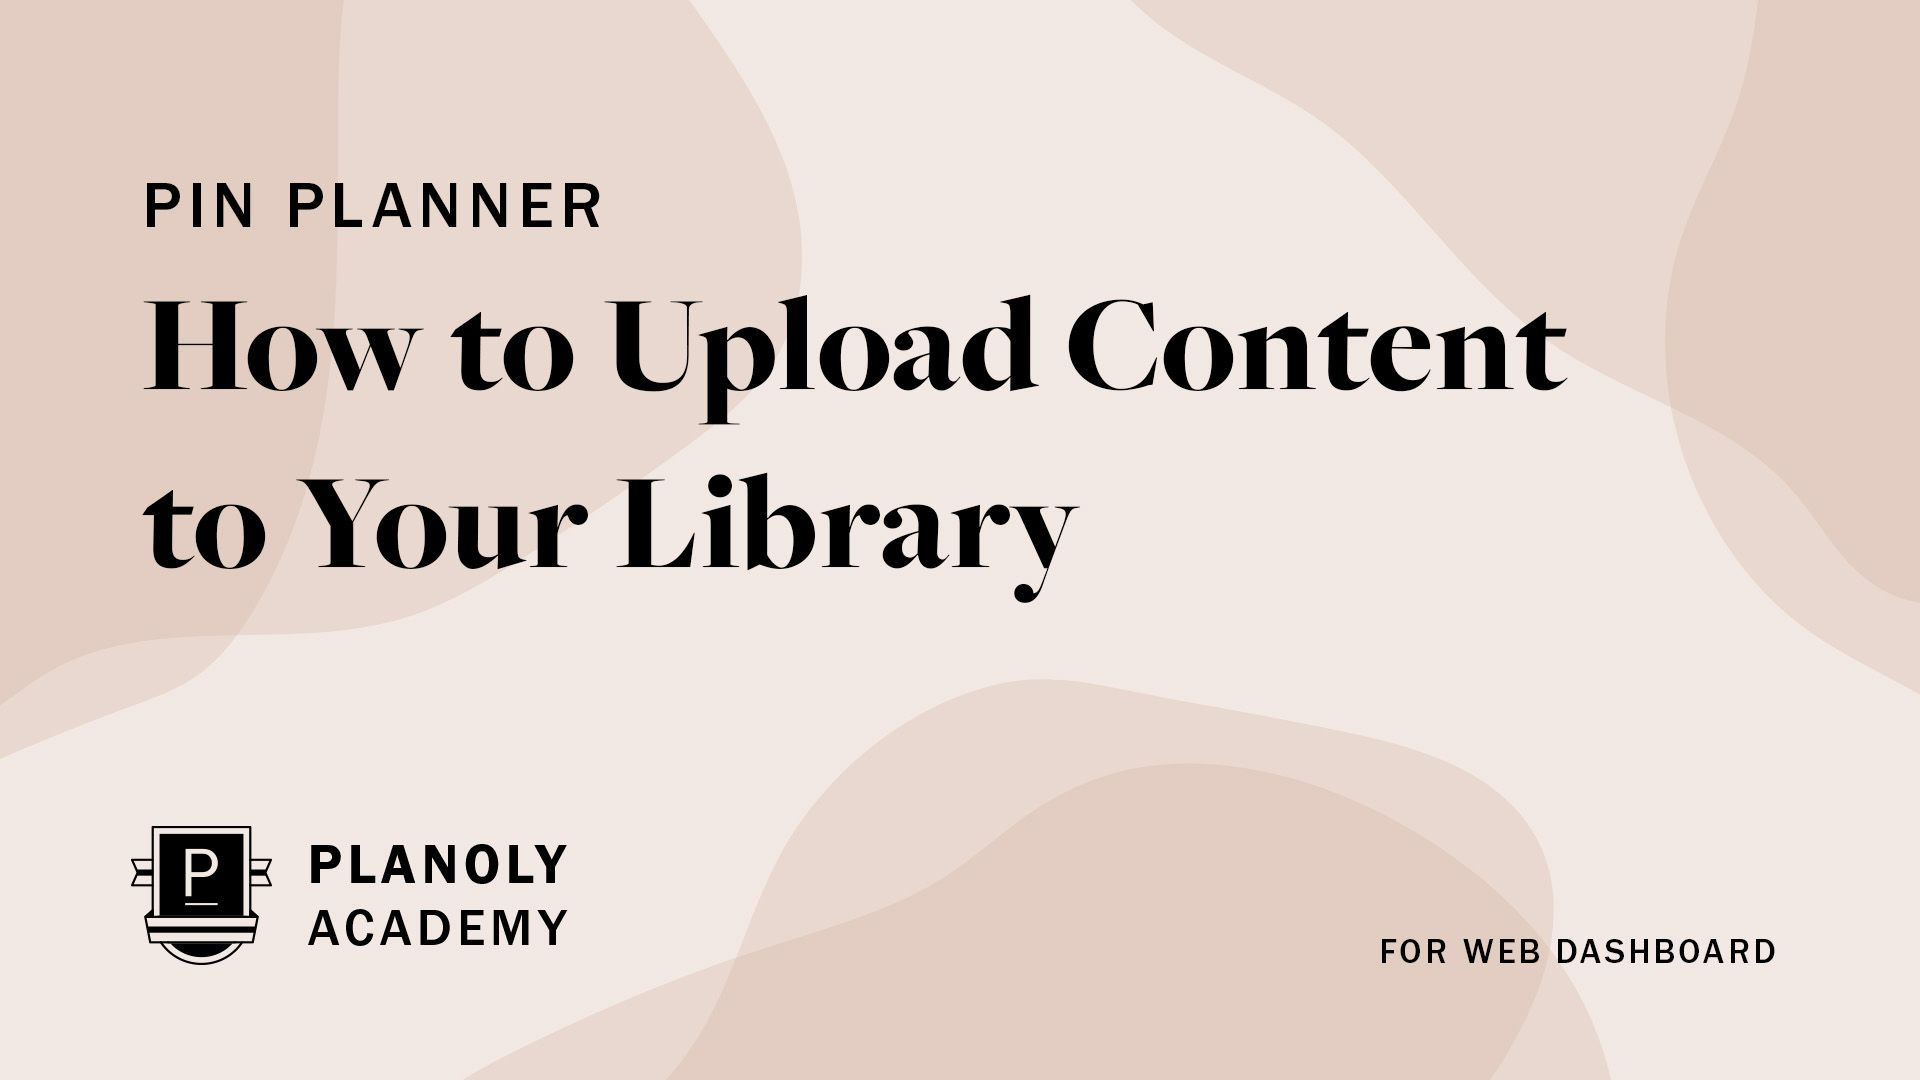 How to Upload Content to Your Library